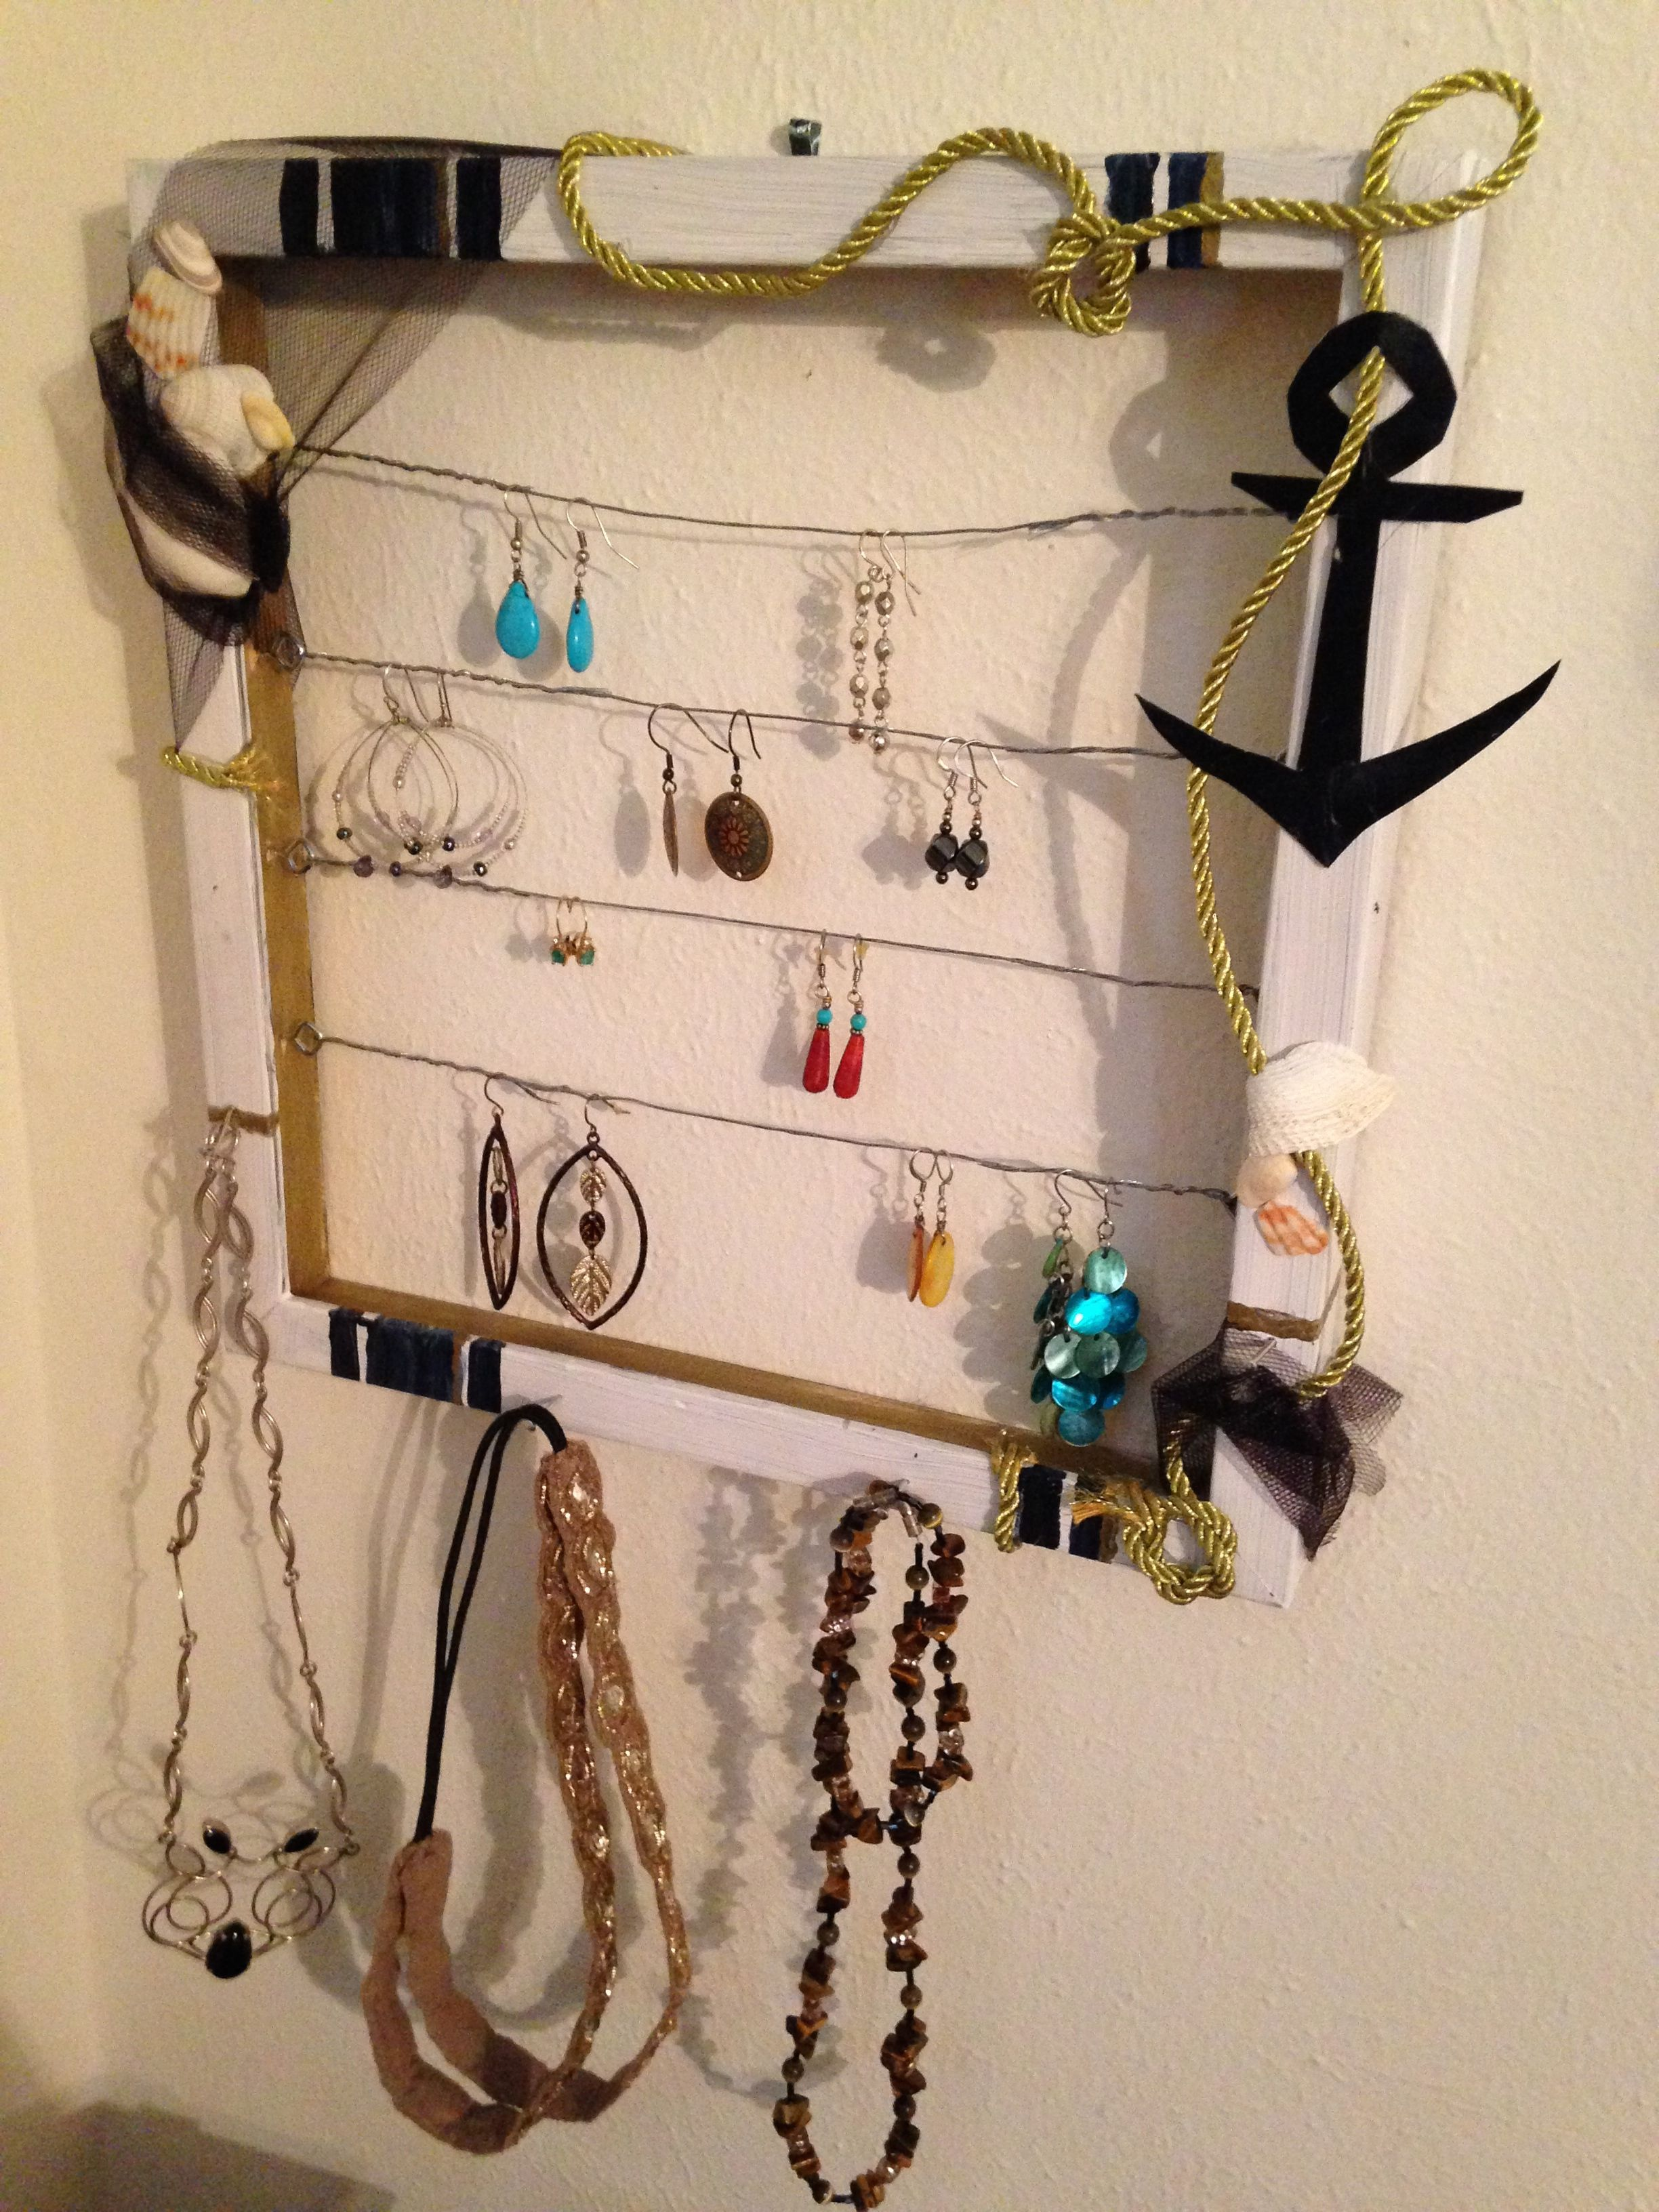 Do it yourself jewelry frame lifestyle she ministries i was going through the jumbled mess of dangling earrings in my jewelry box and thought there must be a better way to organize this and save time solutioingenieria Images